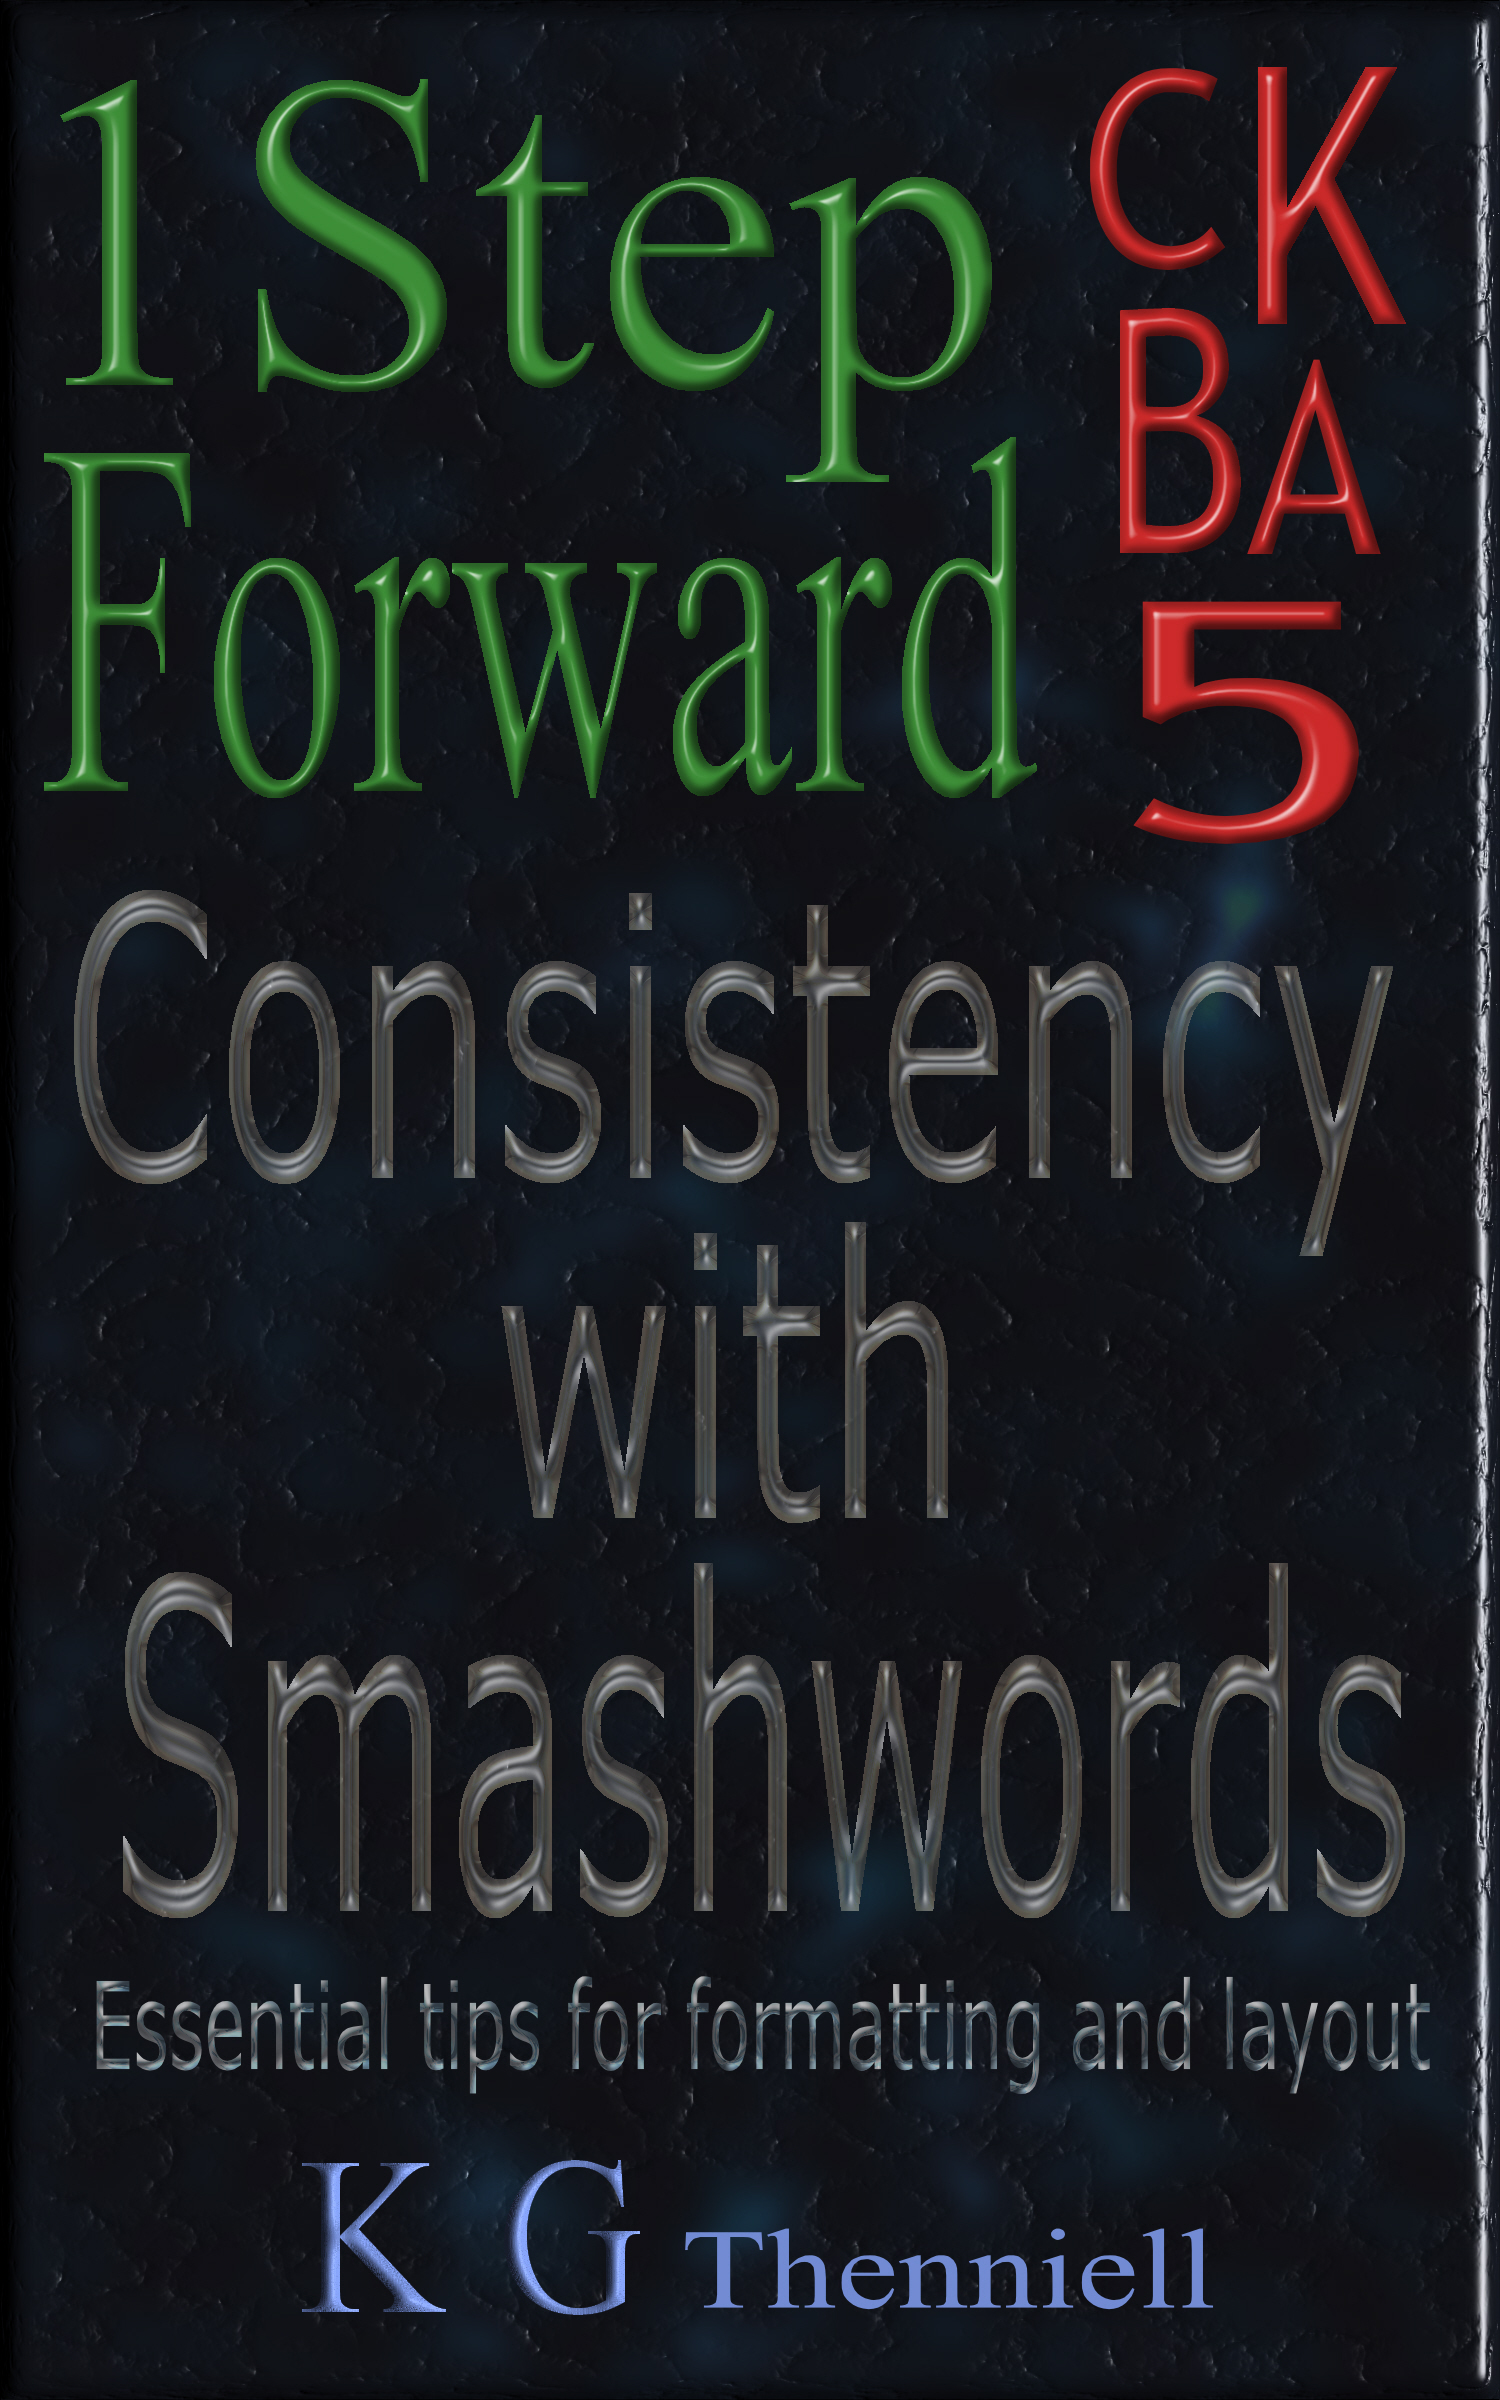 One Step Forward Five Back – Consistency with Smashwords Essential tips for formatting and layout